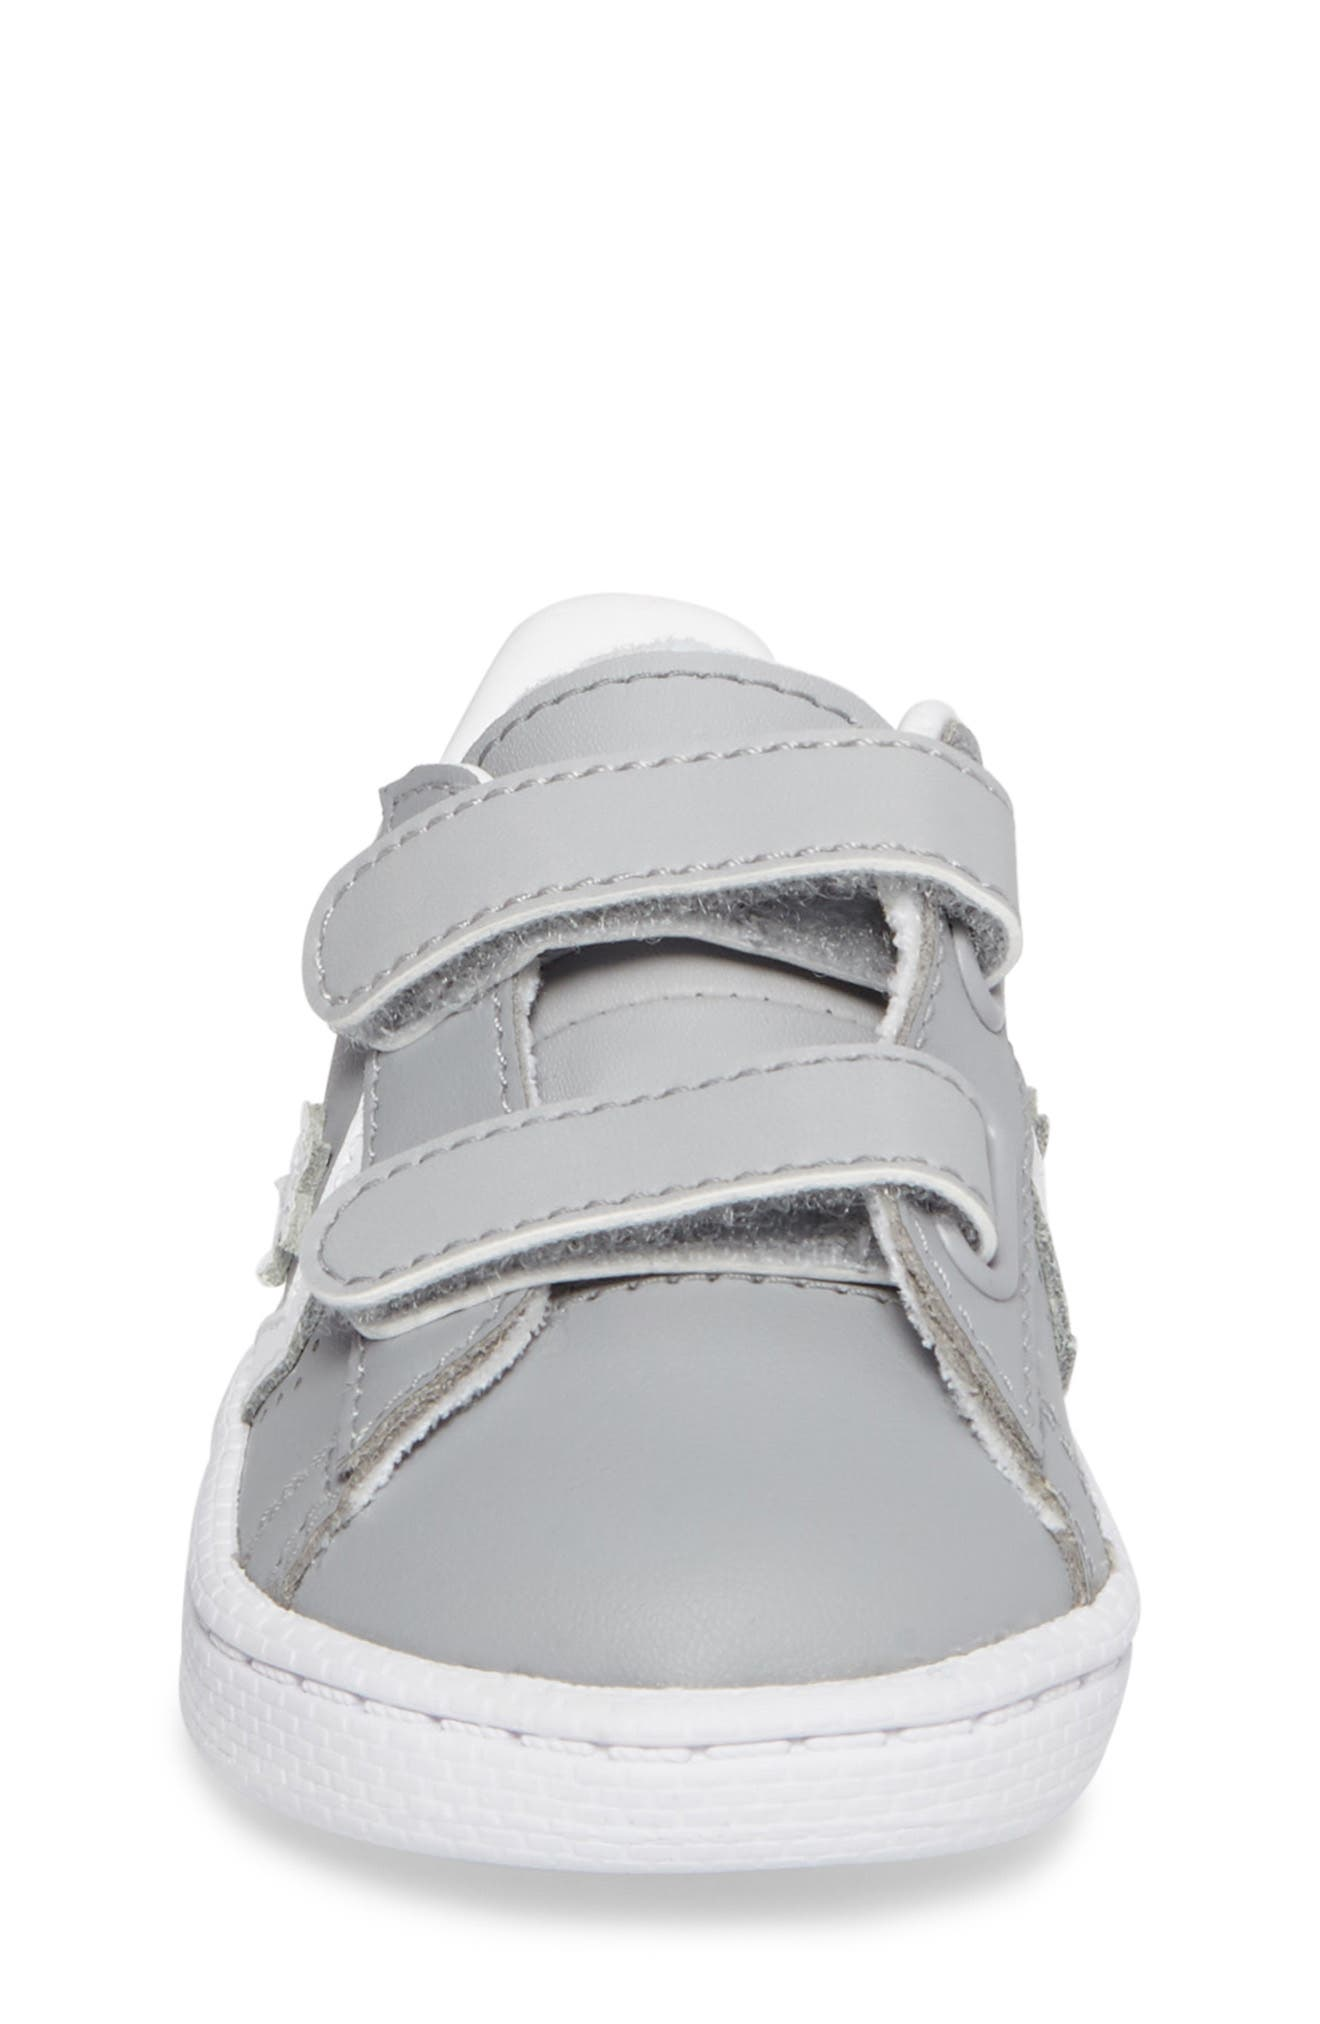 Pro Leather Low Top Sneaker,                             Alternate thumbnail 4, color,